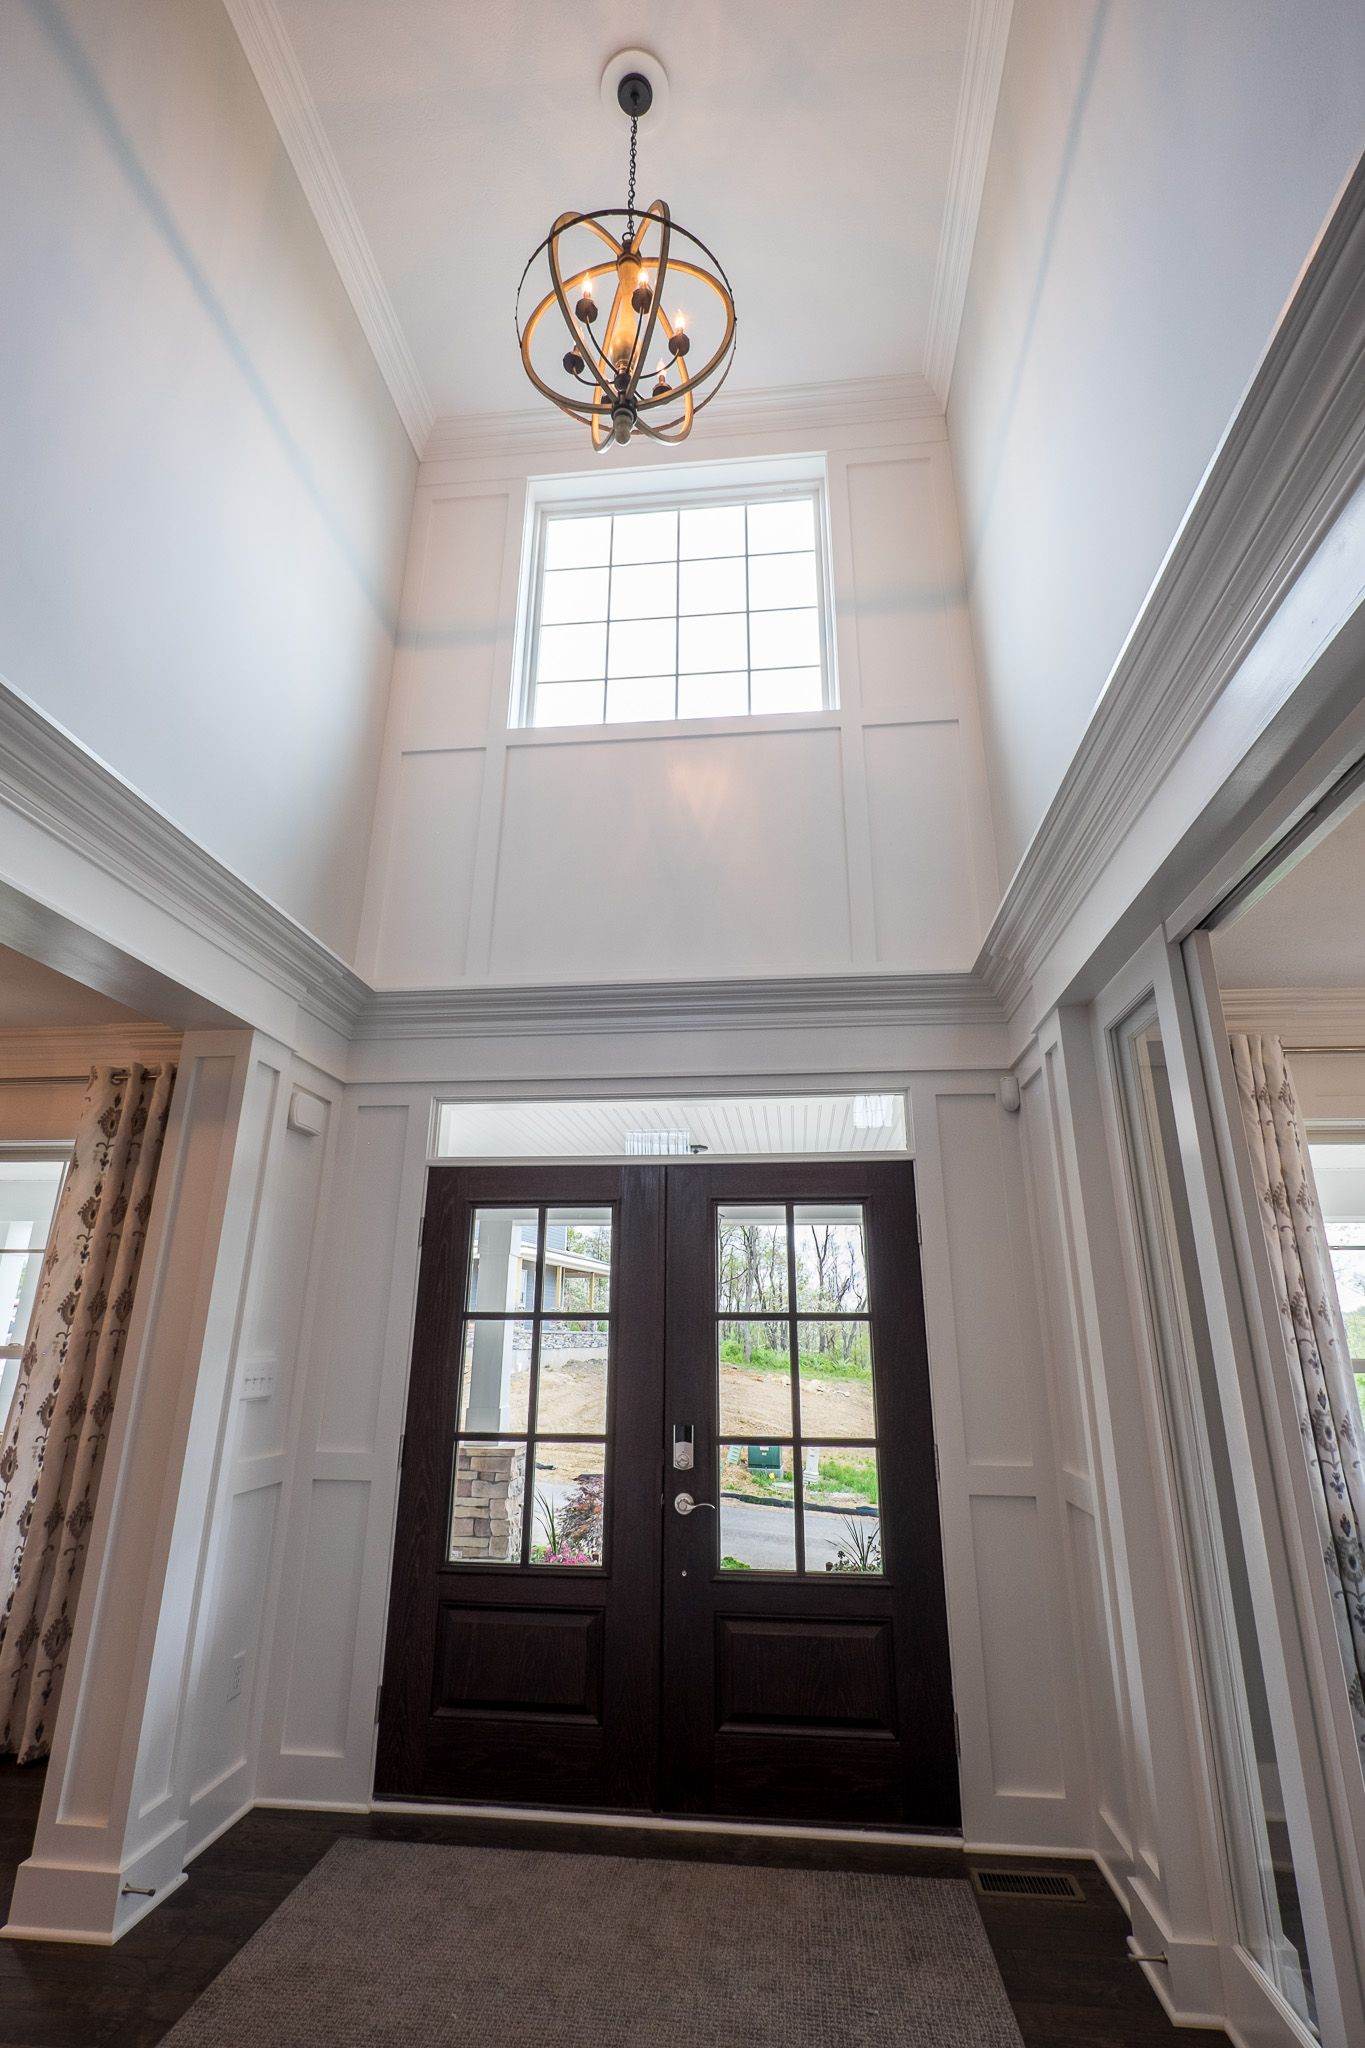 Foyer Window Design : Window and a orbital light fixture brighten the story